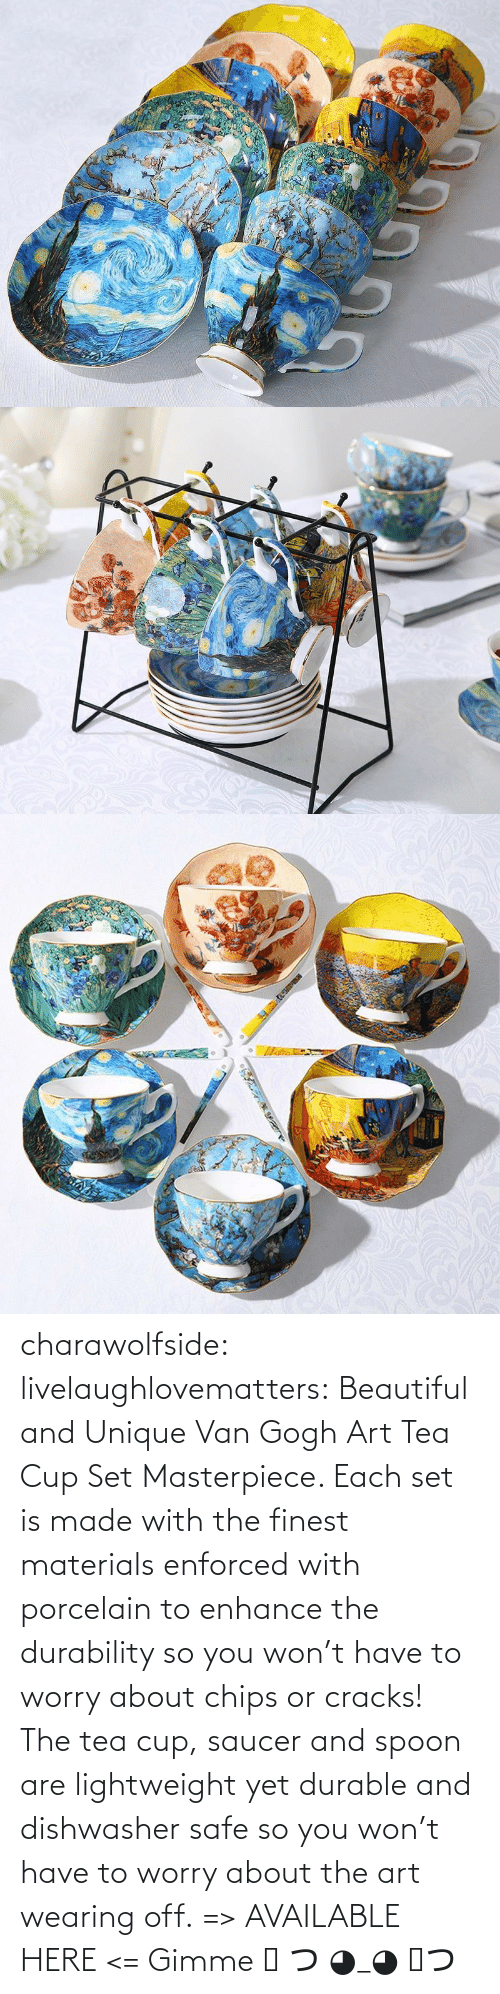 The Tea: charawolfside: livelaughlovematters:  Beautiful and Unique Van Gogh Art Tea Cup Set Masterpiece. Each set is made with the finest materials enforced with porcelain to enhance the durability so you won't have to worry about chips or cracks! The tea cup, saucer and spoon are lightweight yet durable and dishwasher safe so you won't have to worry about the art wearing off. => AVAILABLE HERE <=    Gimme ༼ つ ◕_◕ ༽つ